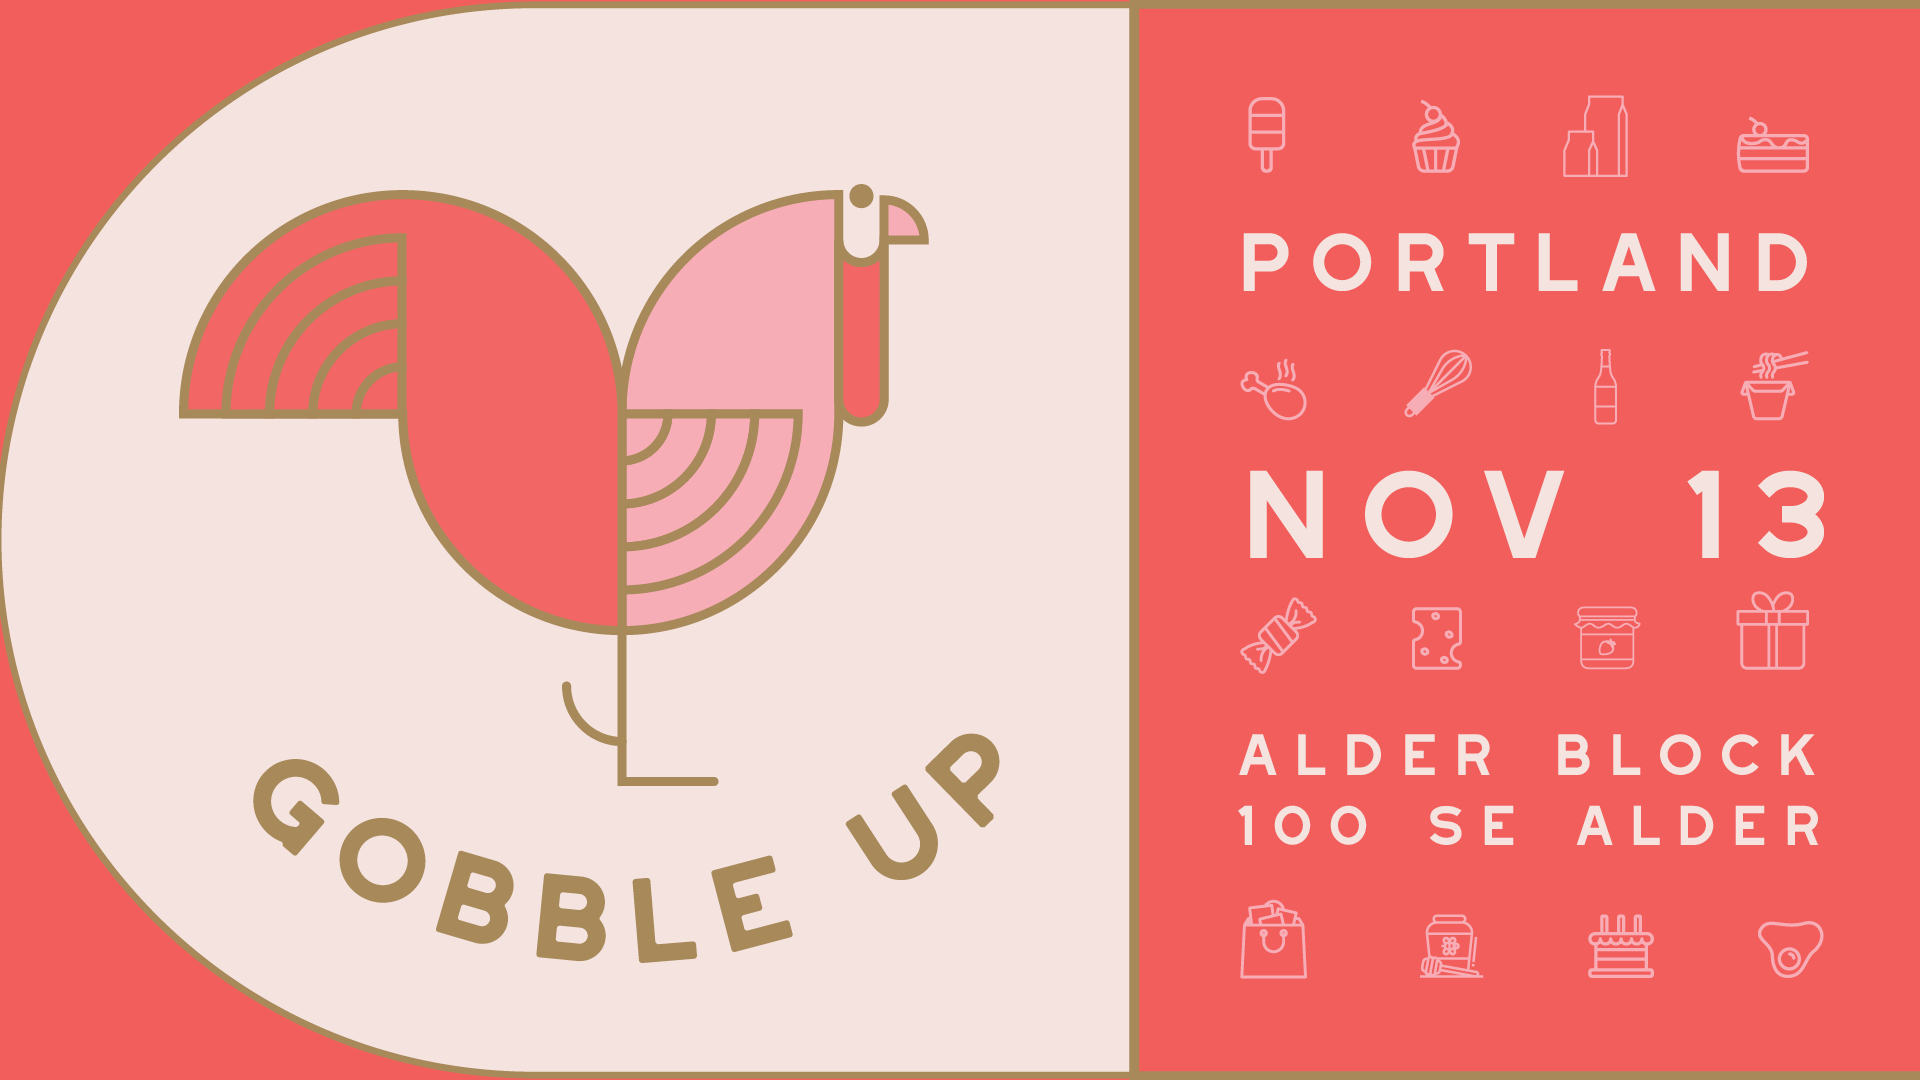 Gobble Up PDX